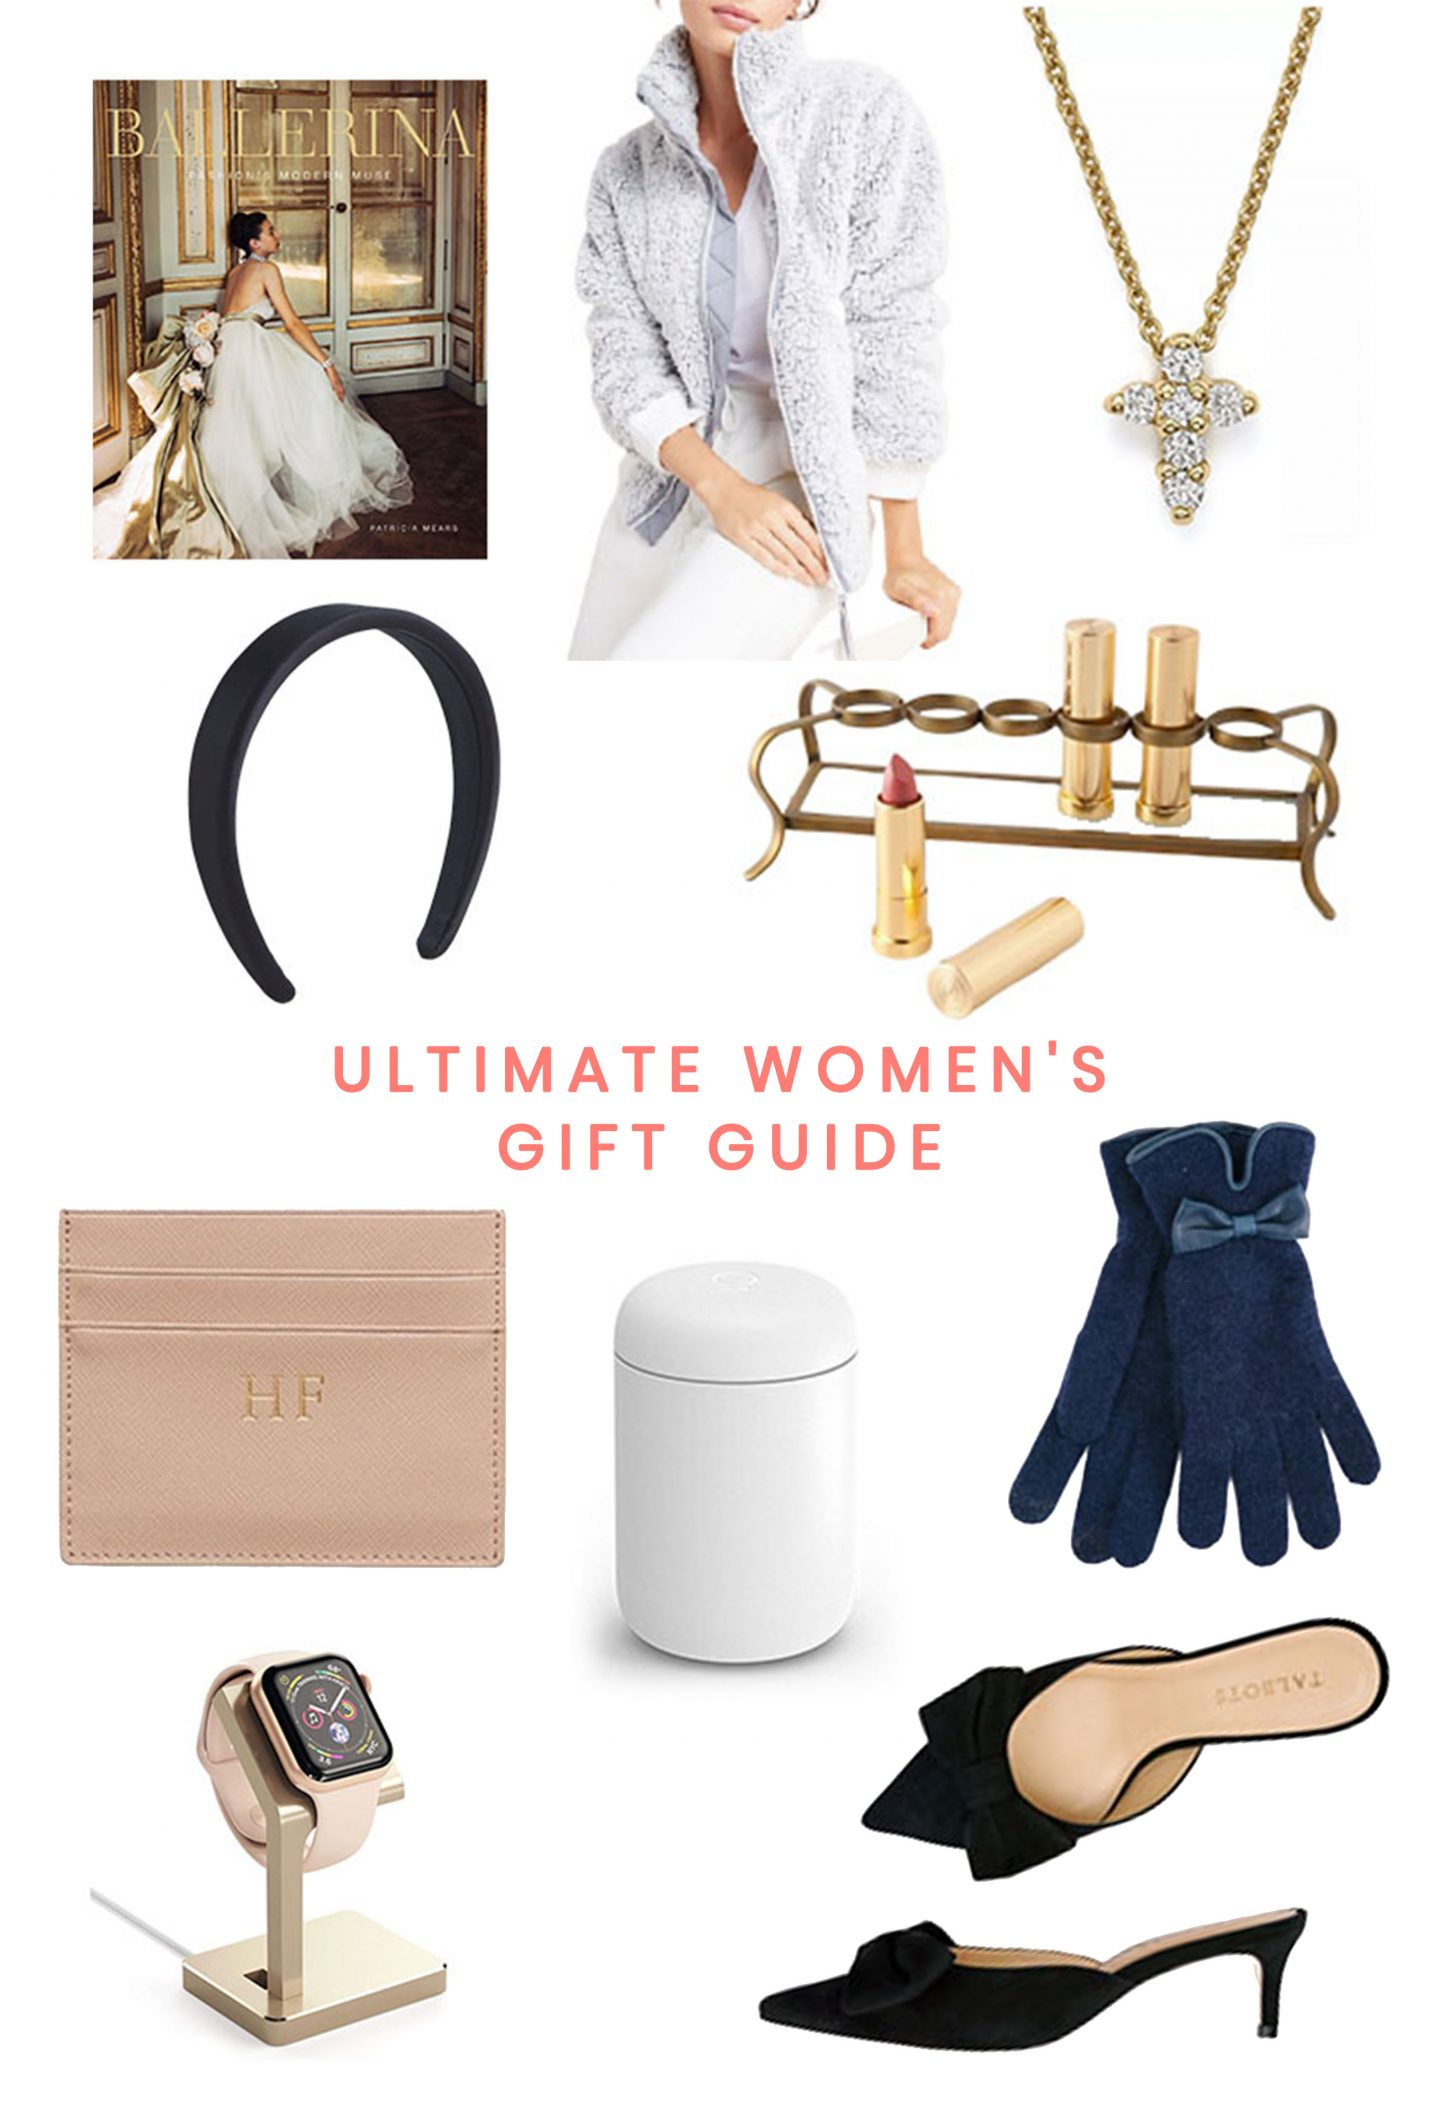 Ultimate Women's Gift Guide 2019